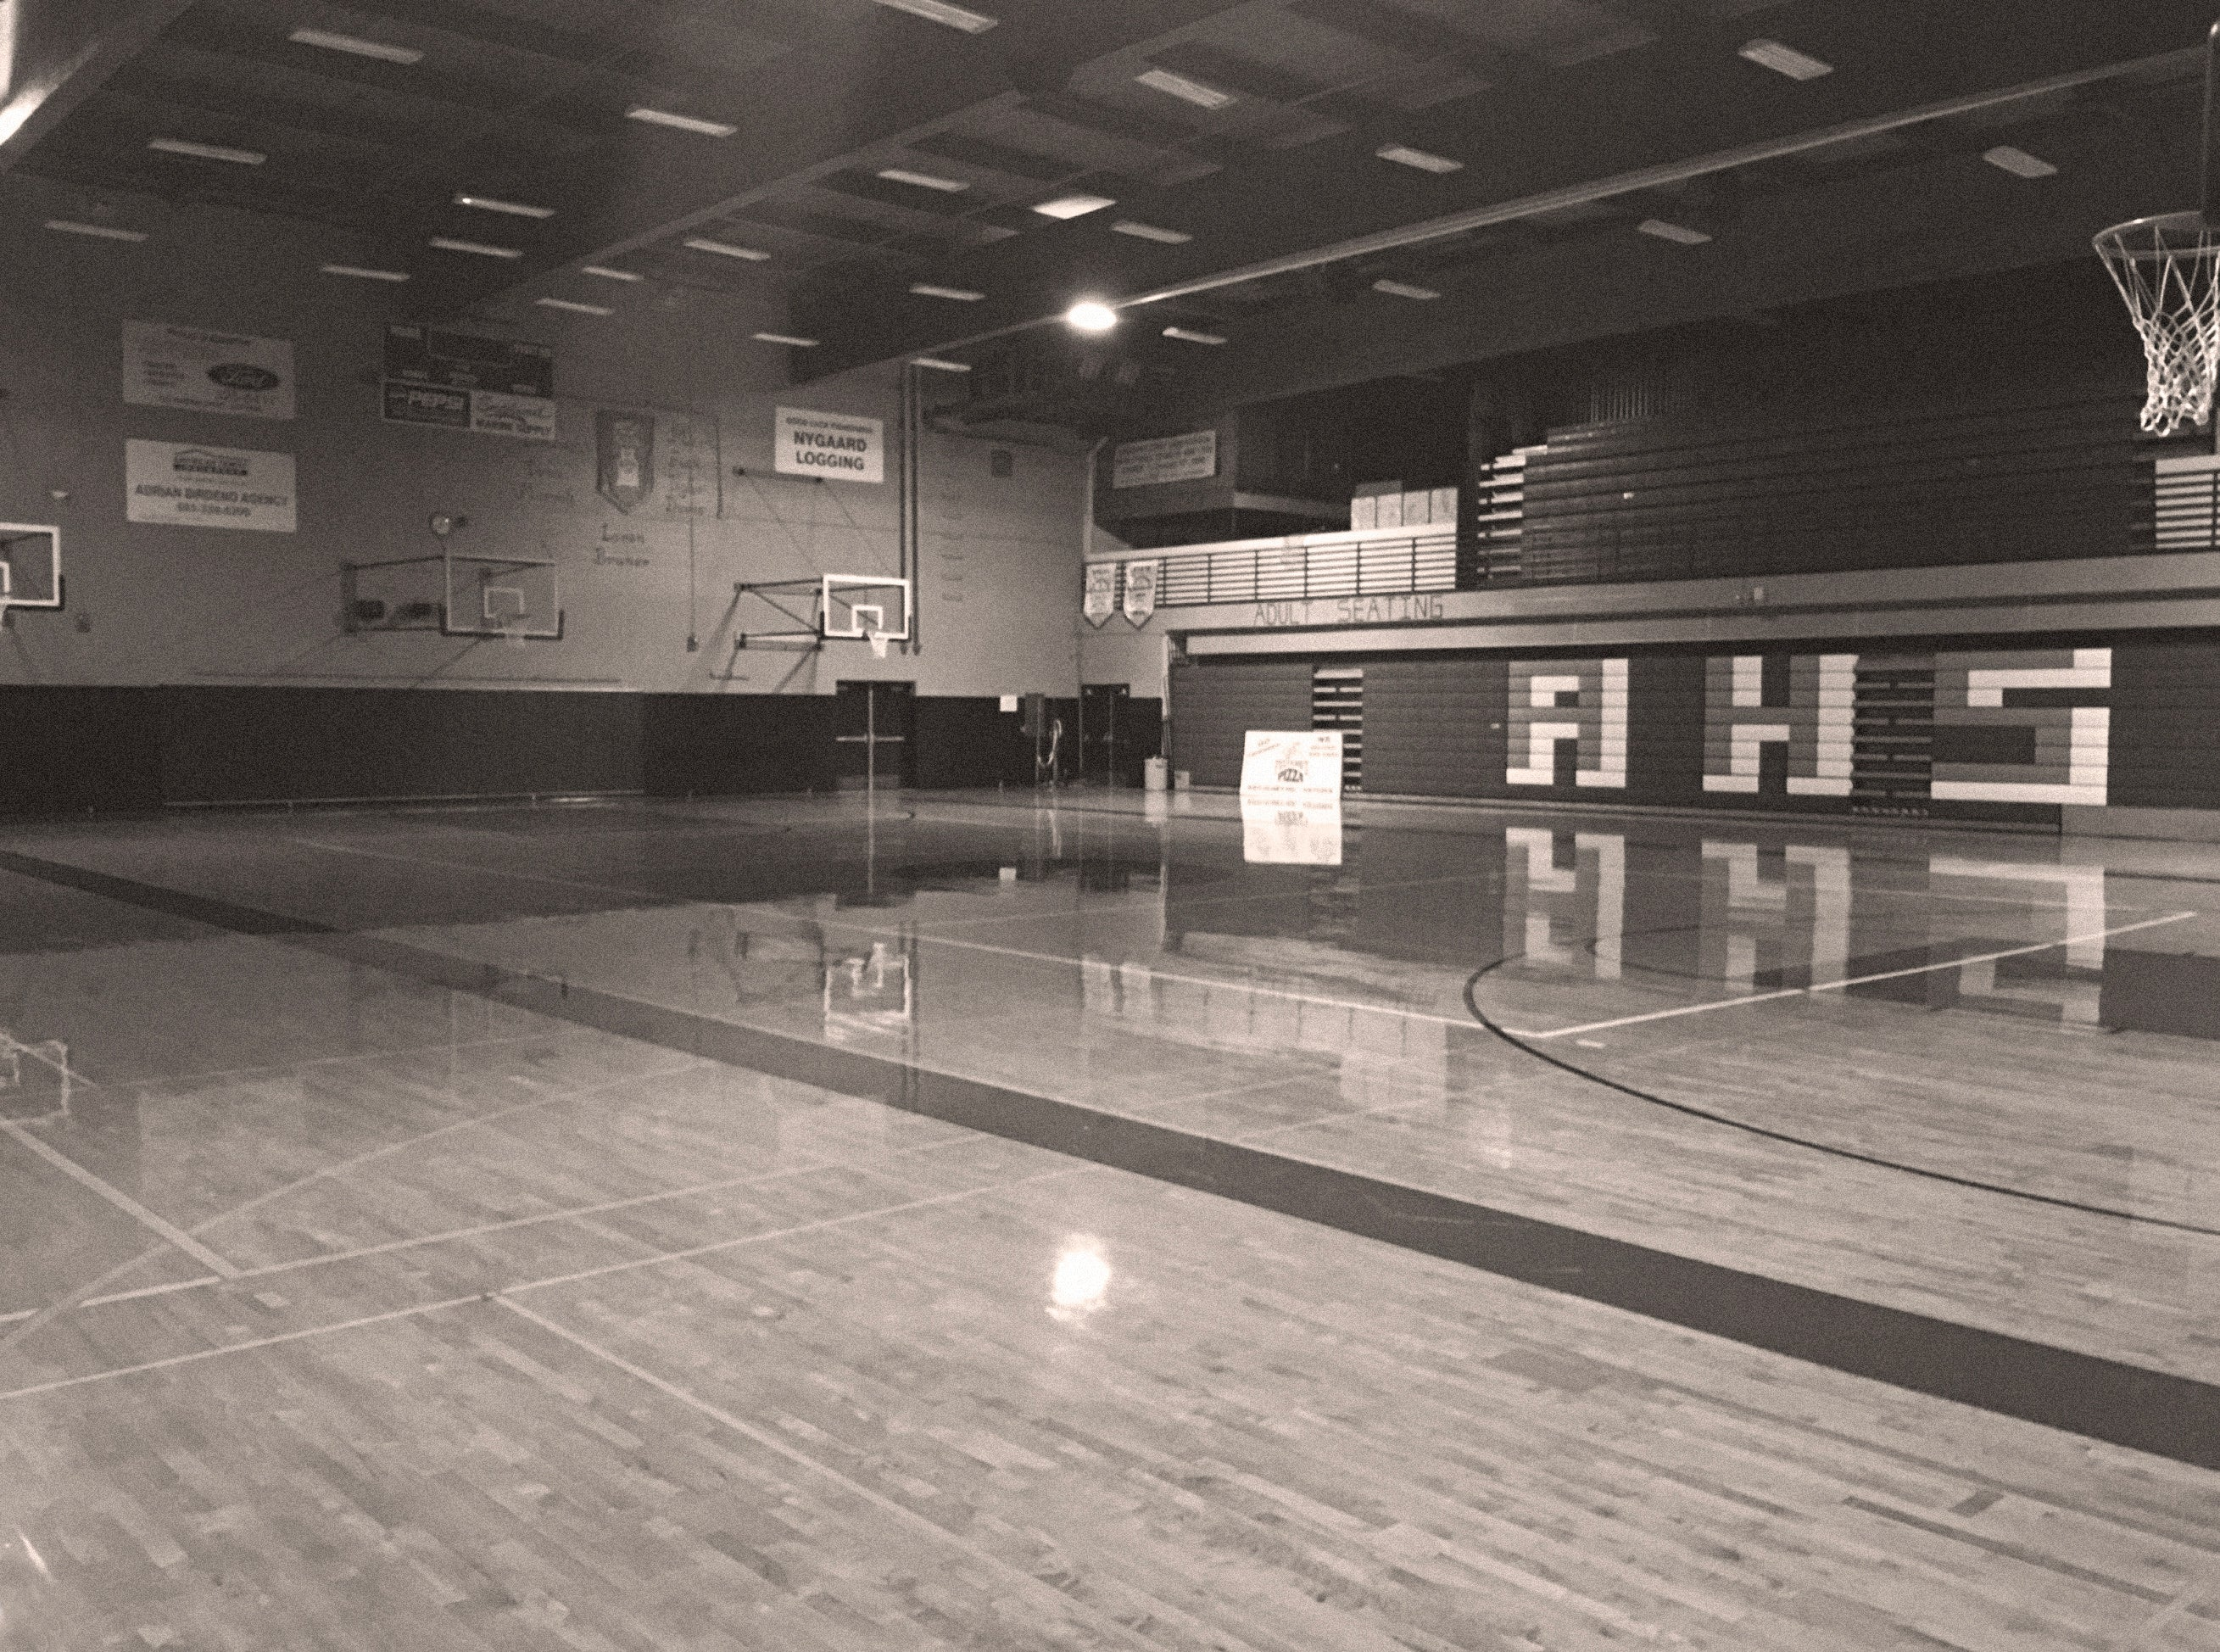 Empty high school gym